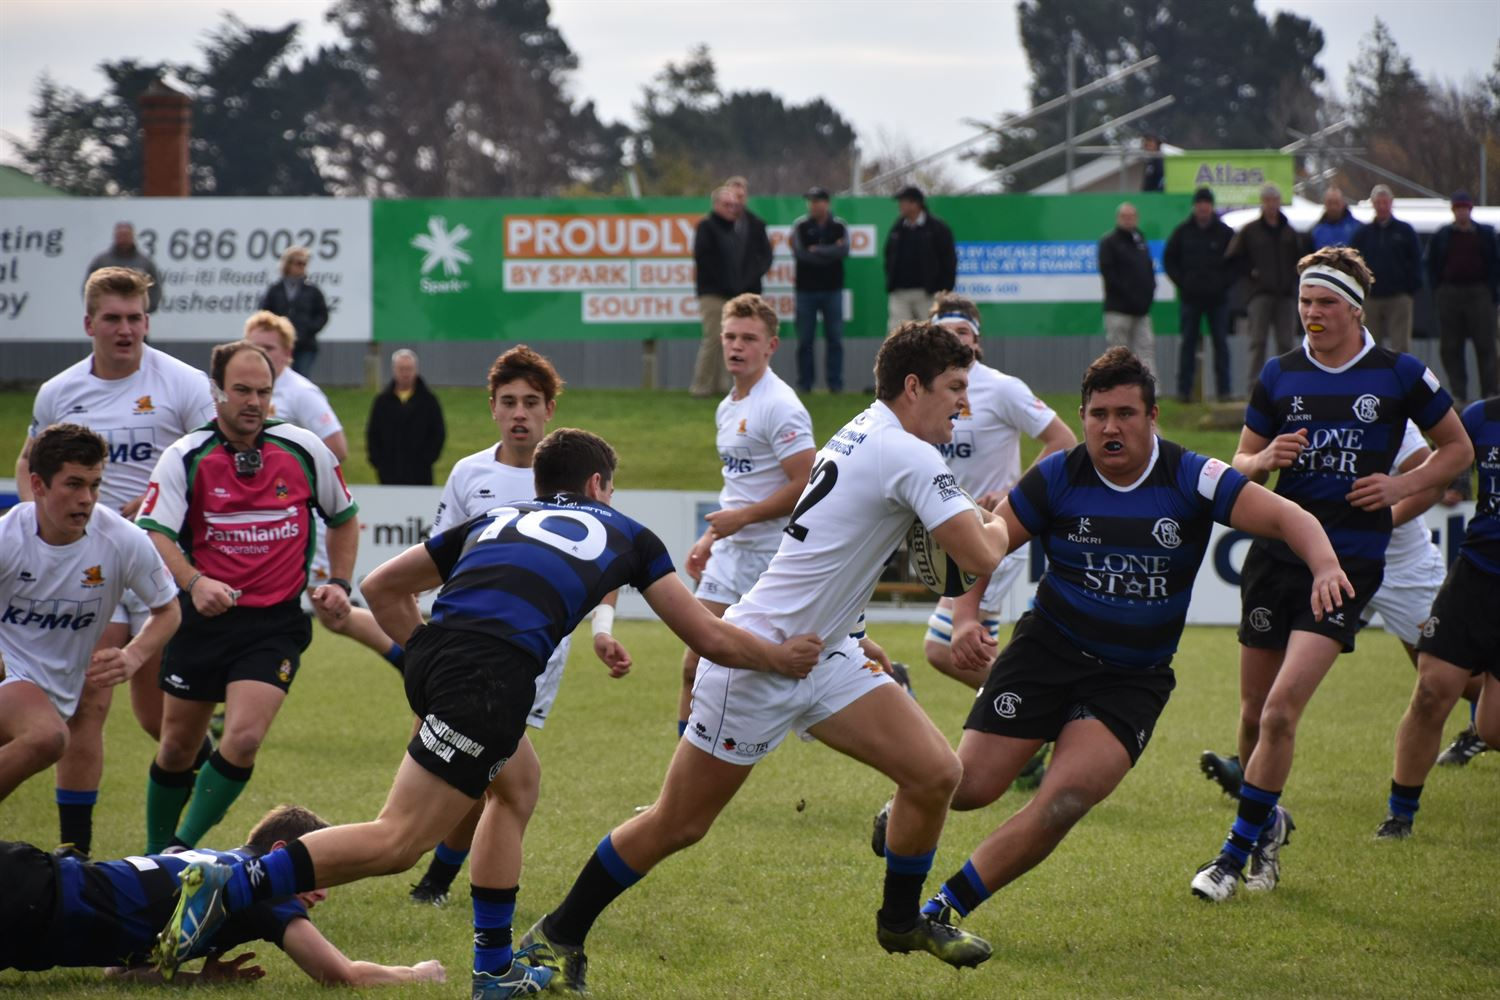 Timaru Boys High School - Boys 1st XV